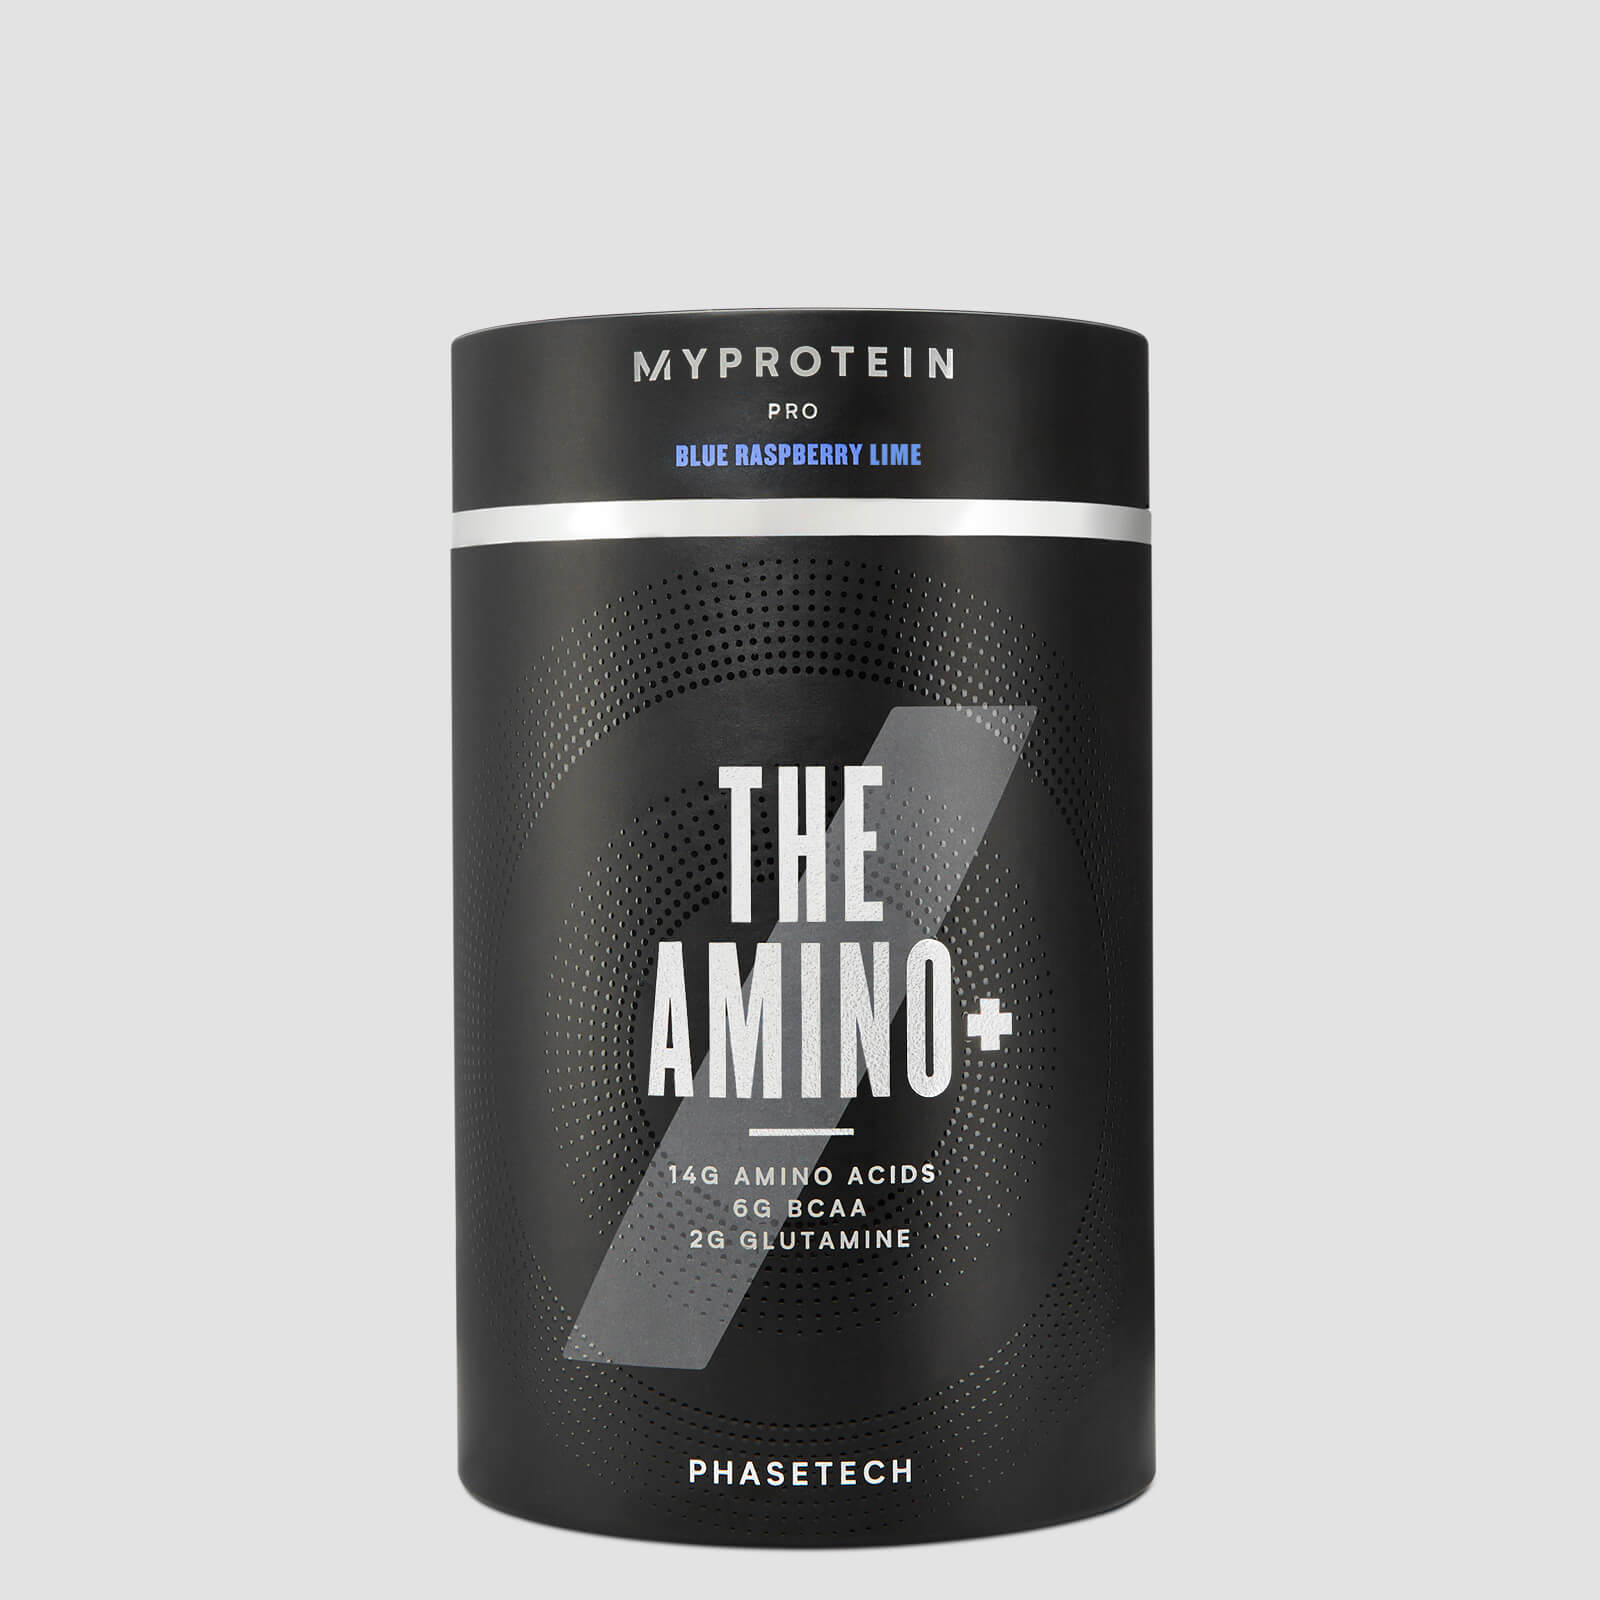 THE Amino+ - 20servings - Mûre et Citron